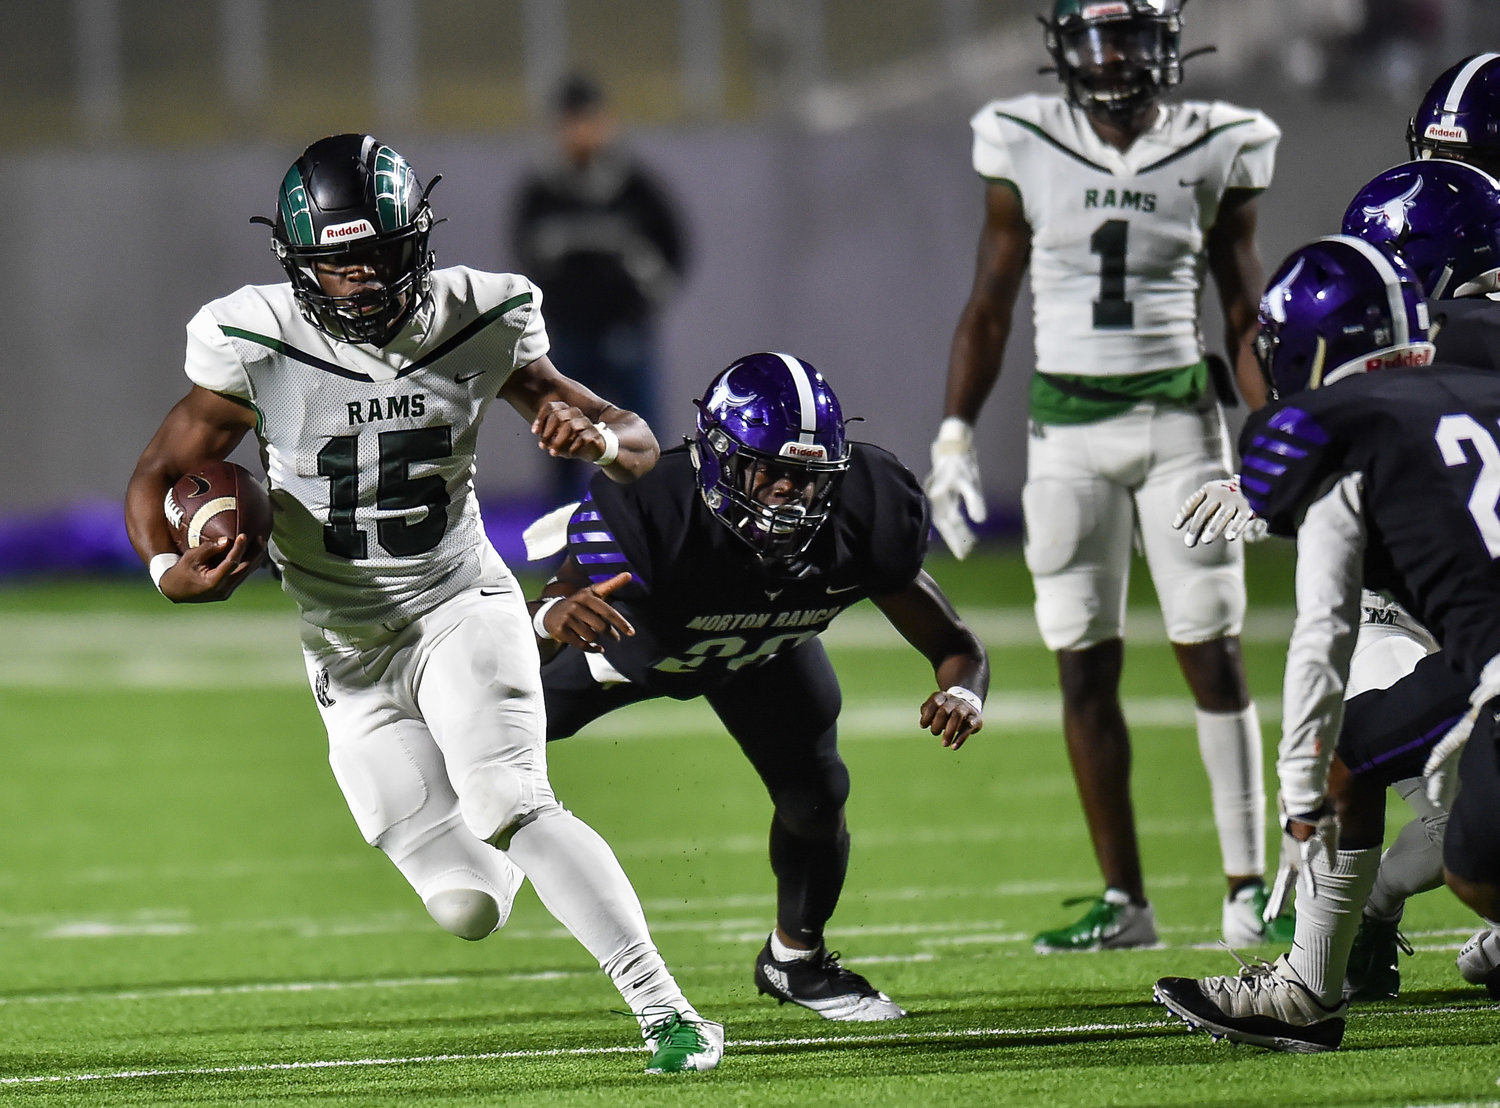 Katy, Tx. Nov. 8, 2019: Mayde Creek's Julius Loughridge (15) carries the ball during a conference game between Morton Ranch Mavericks and Mayde Creek Rams at Legacy Stadium. (Photo by Mark Goodman / Katy Times)